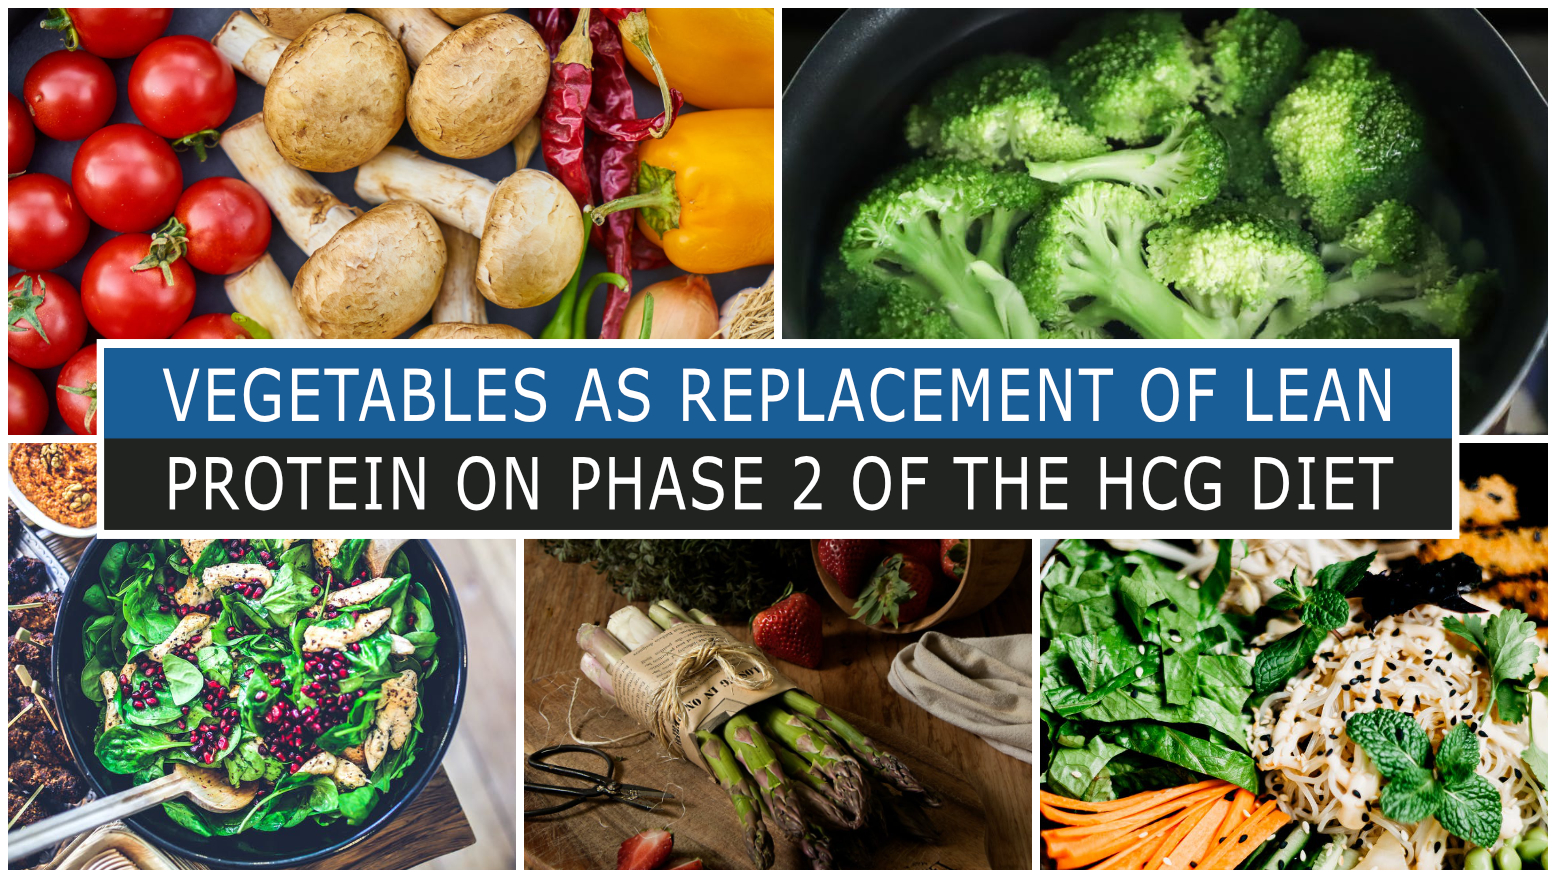 VEGETABLES AS REPLACEMENT OF LEAN PROTEIN ON PHASE 2 OF THE HCG DIET